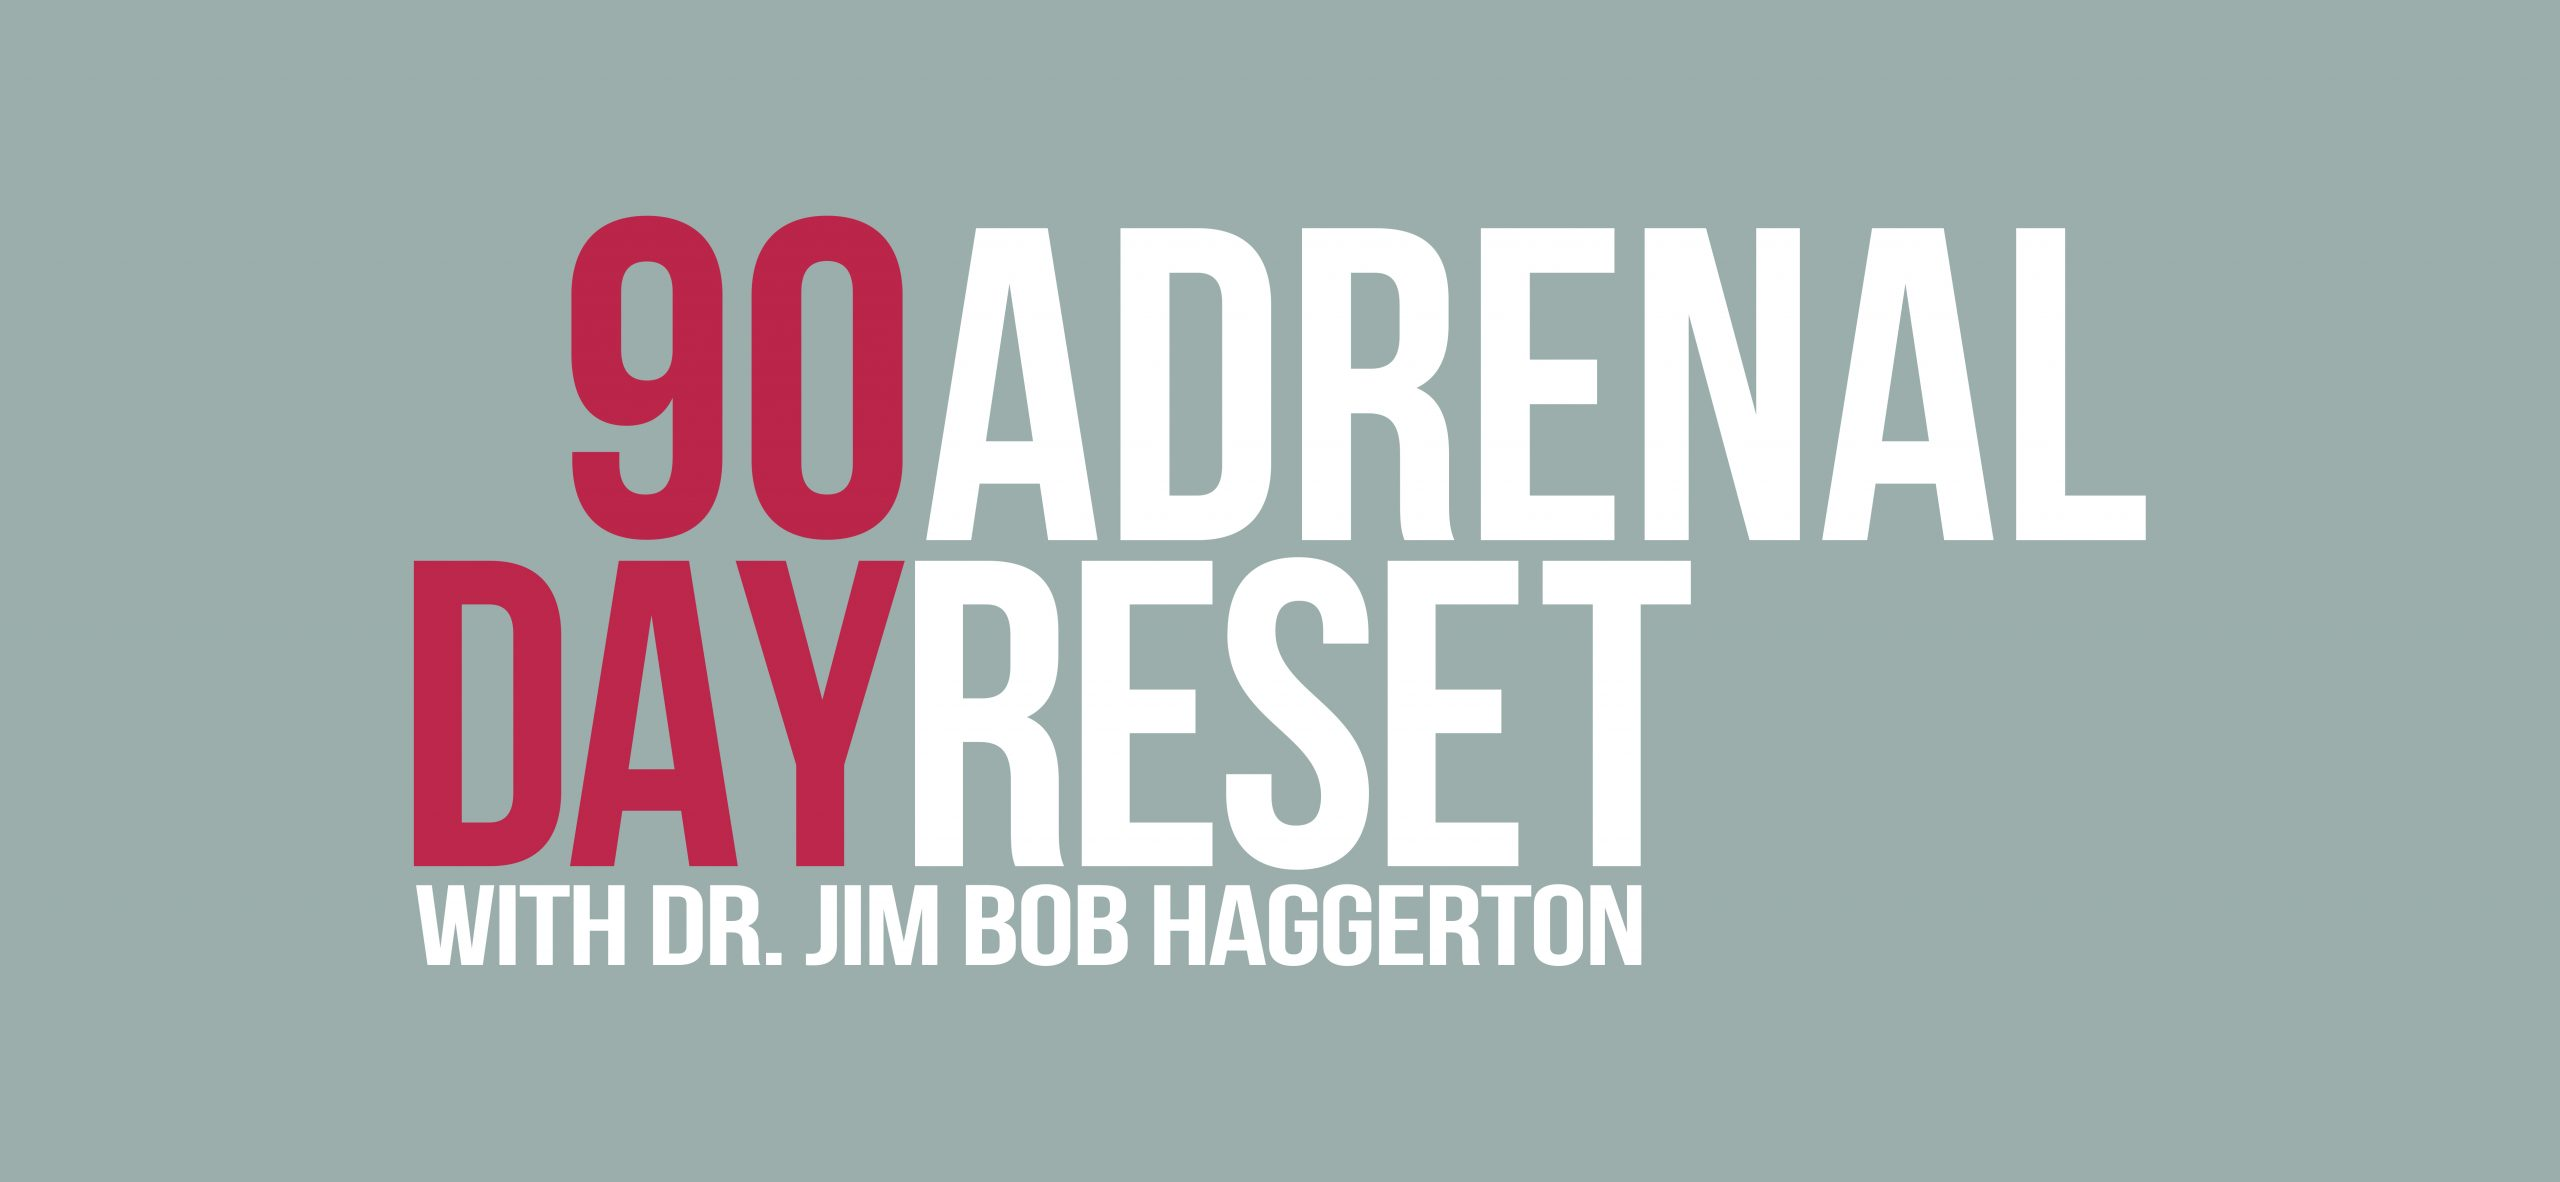 90 Day Adrenal Reset